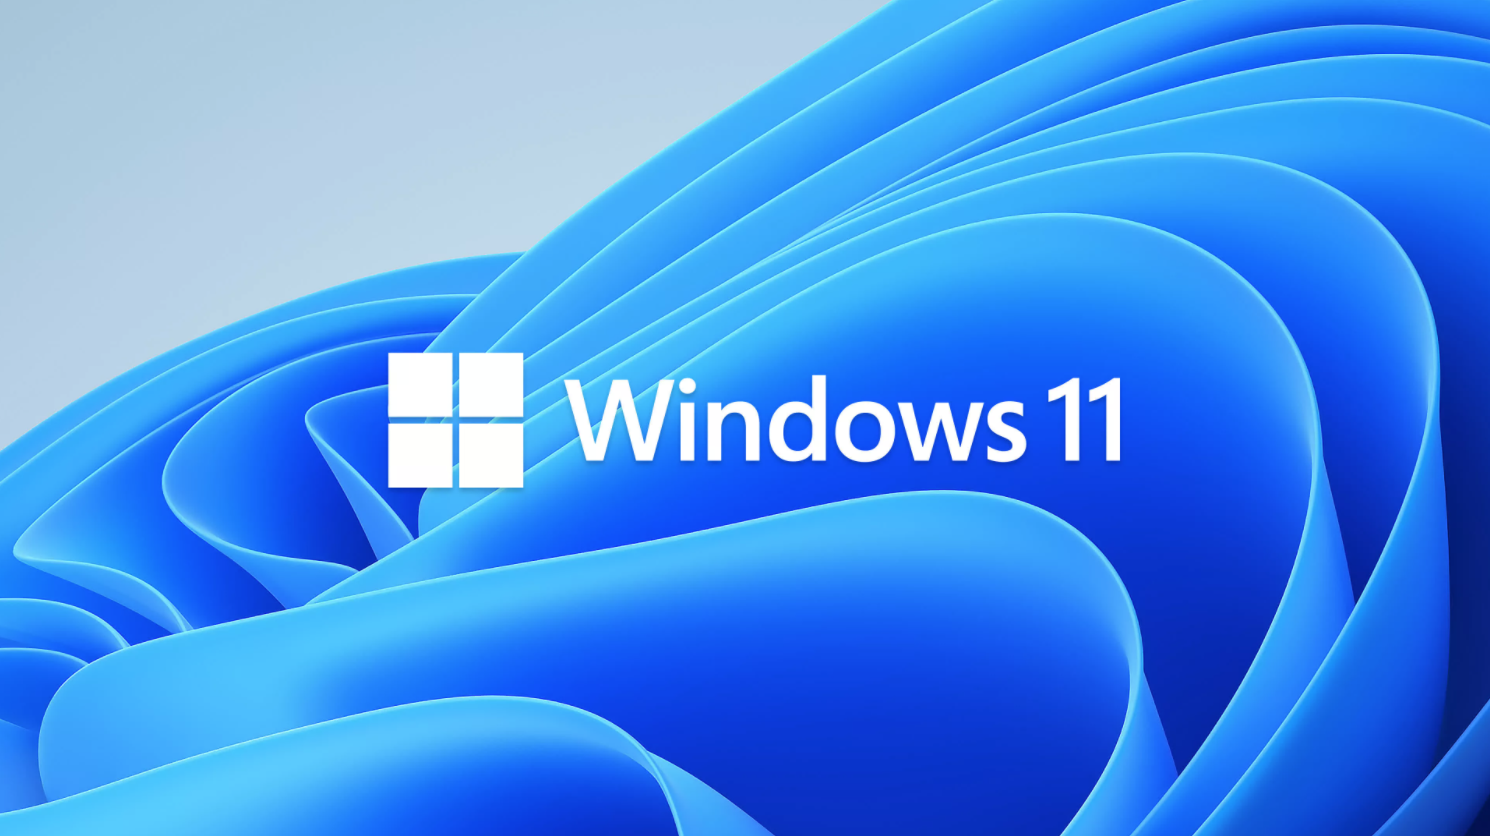 Microsoft is going the extra mile to make sure users don't skirt Windows 11 hardware requirements